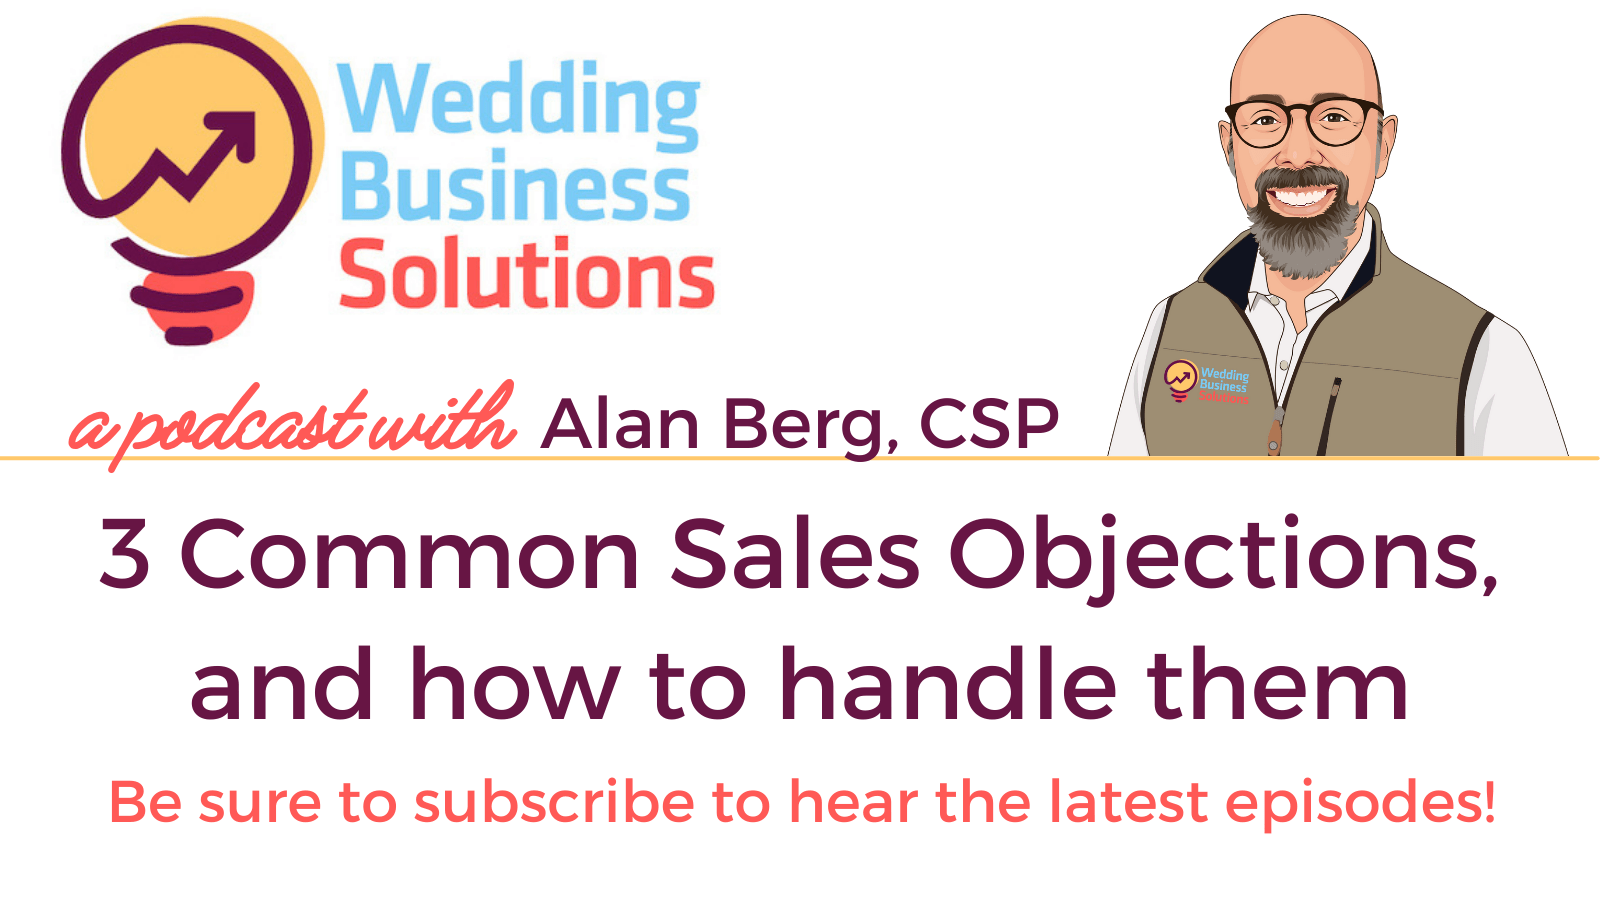 Wedding Business Solutions Podcast with Alan Berg CSP - 3 Common Sales Objections, and how to handle them